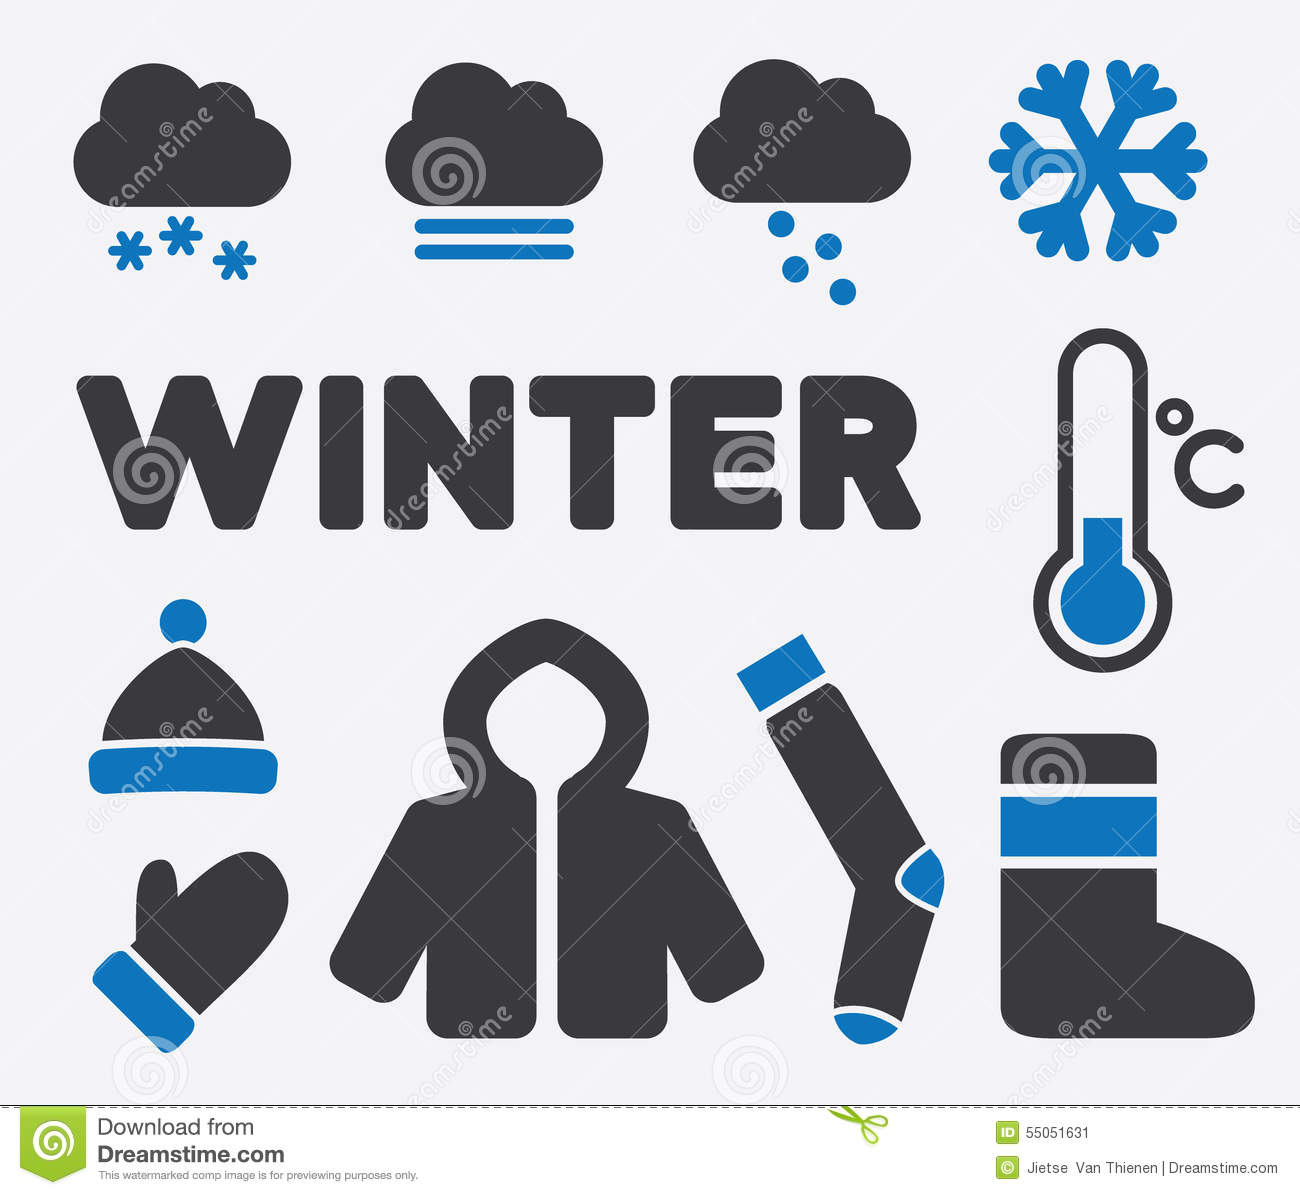 What are the signs in winter